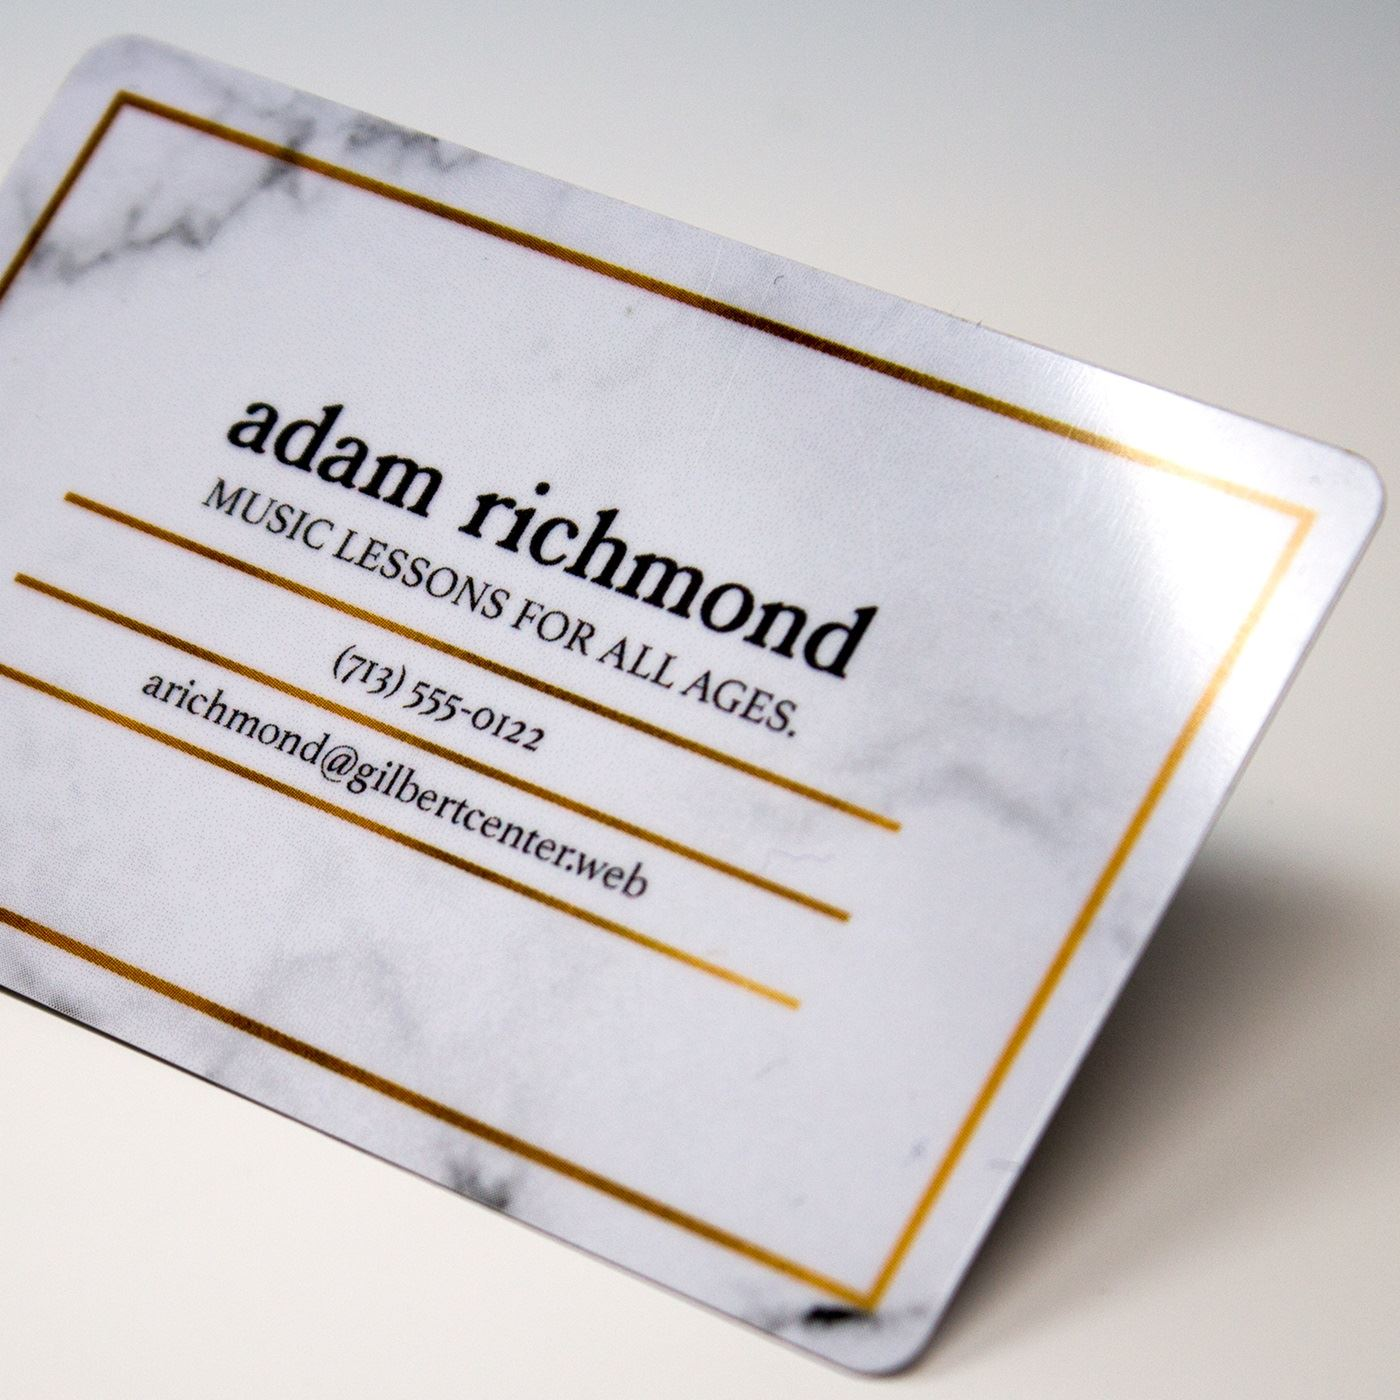 Plastic business cards printing vistaprint for Clear plastic business cards vistaprint